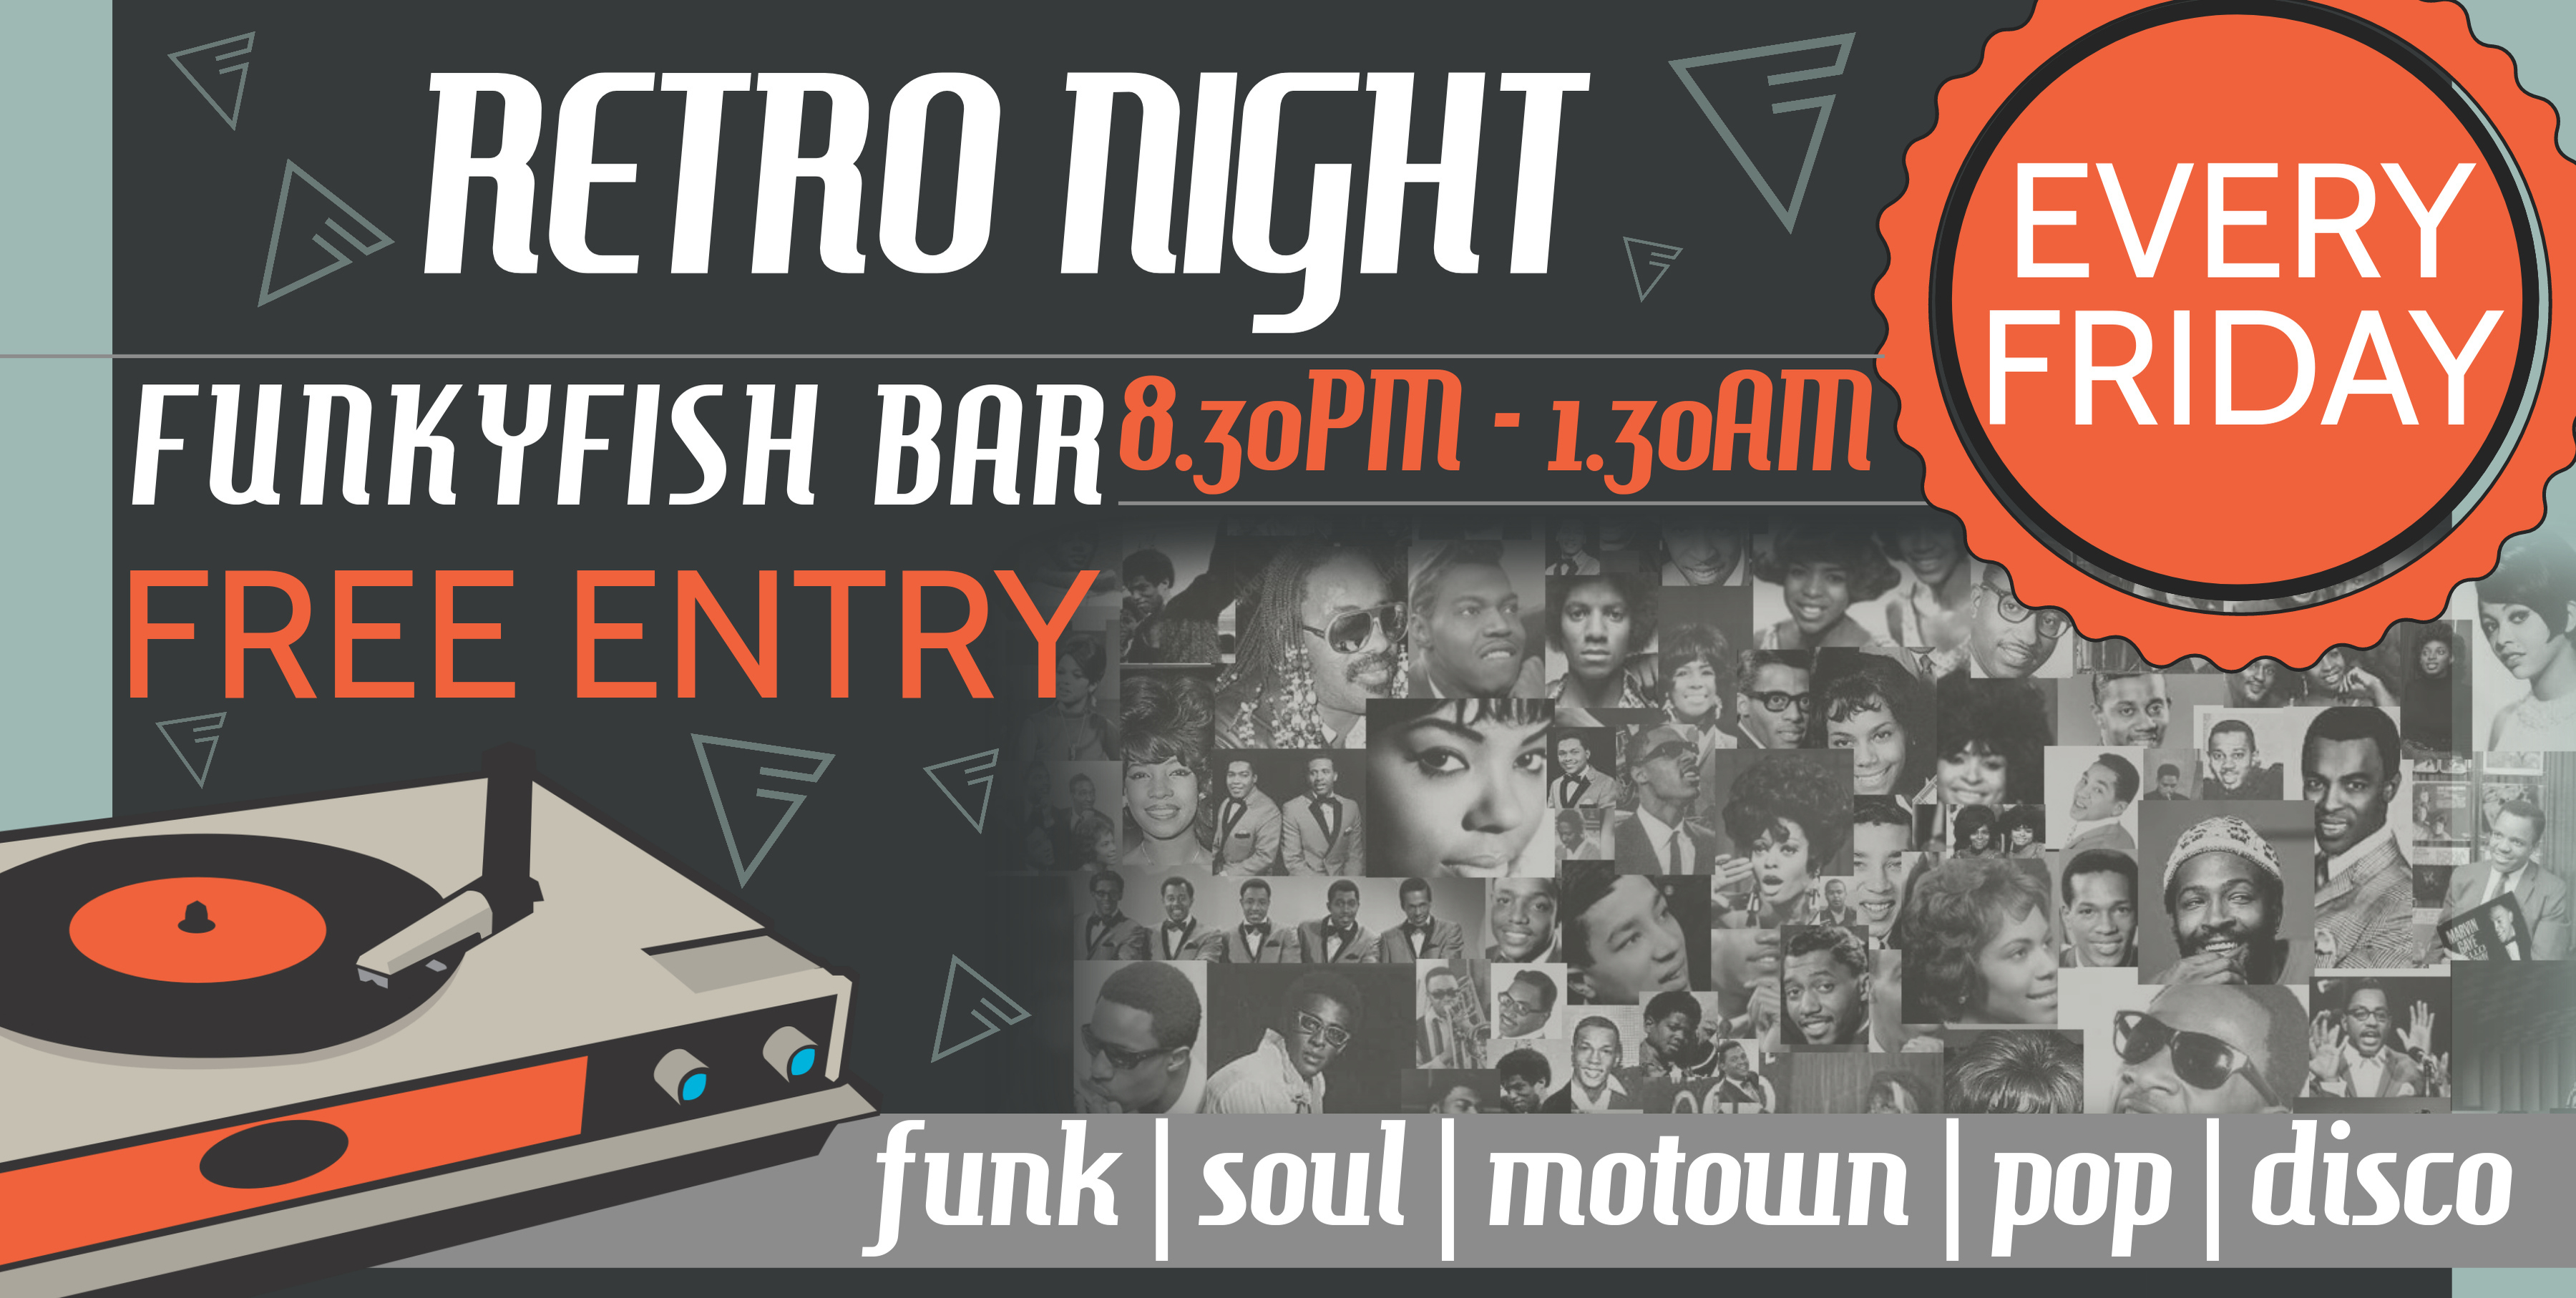 FRIDAY - RETRO NIGHT